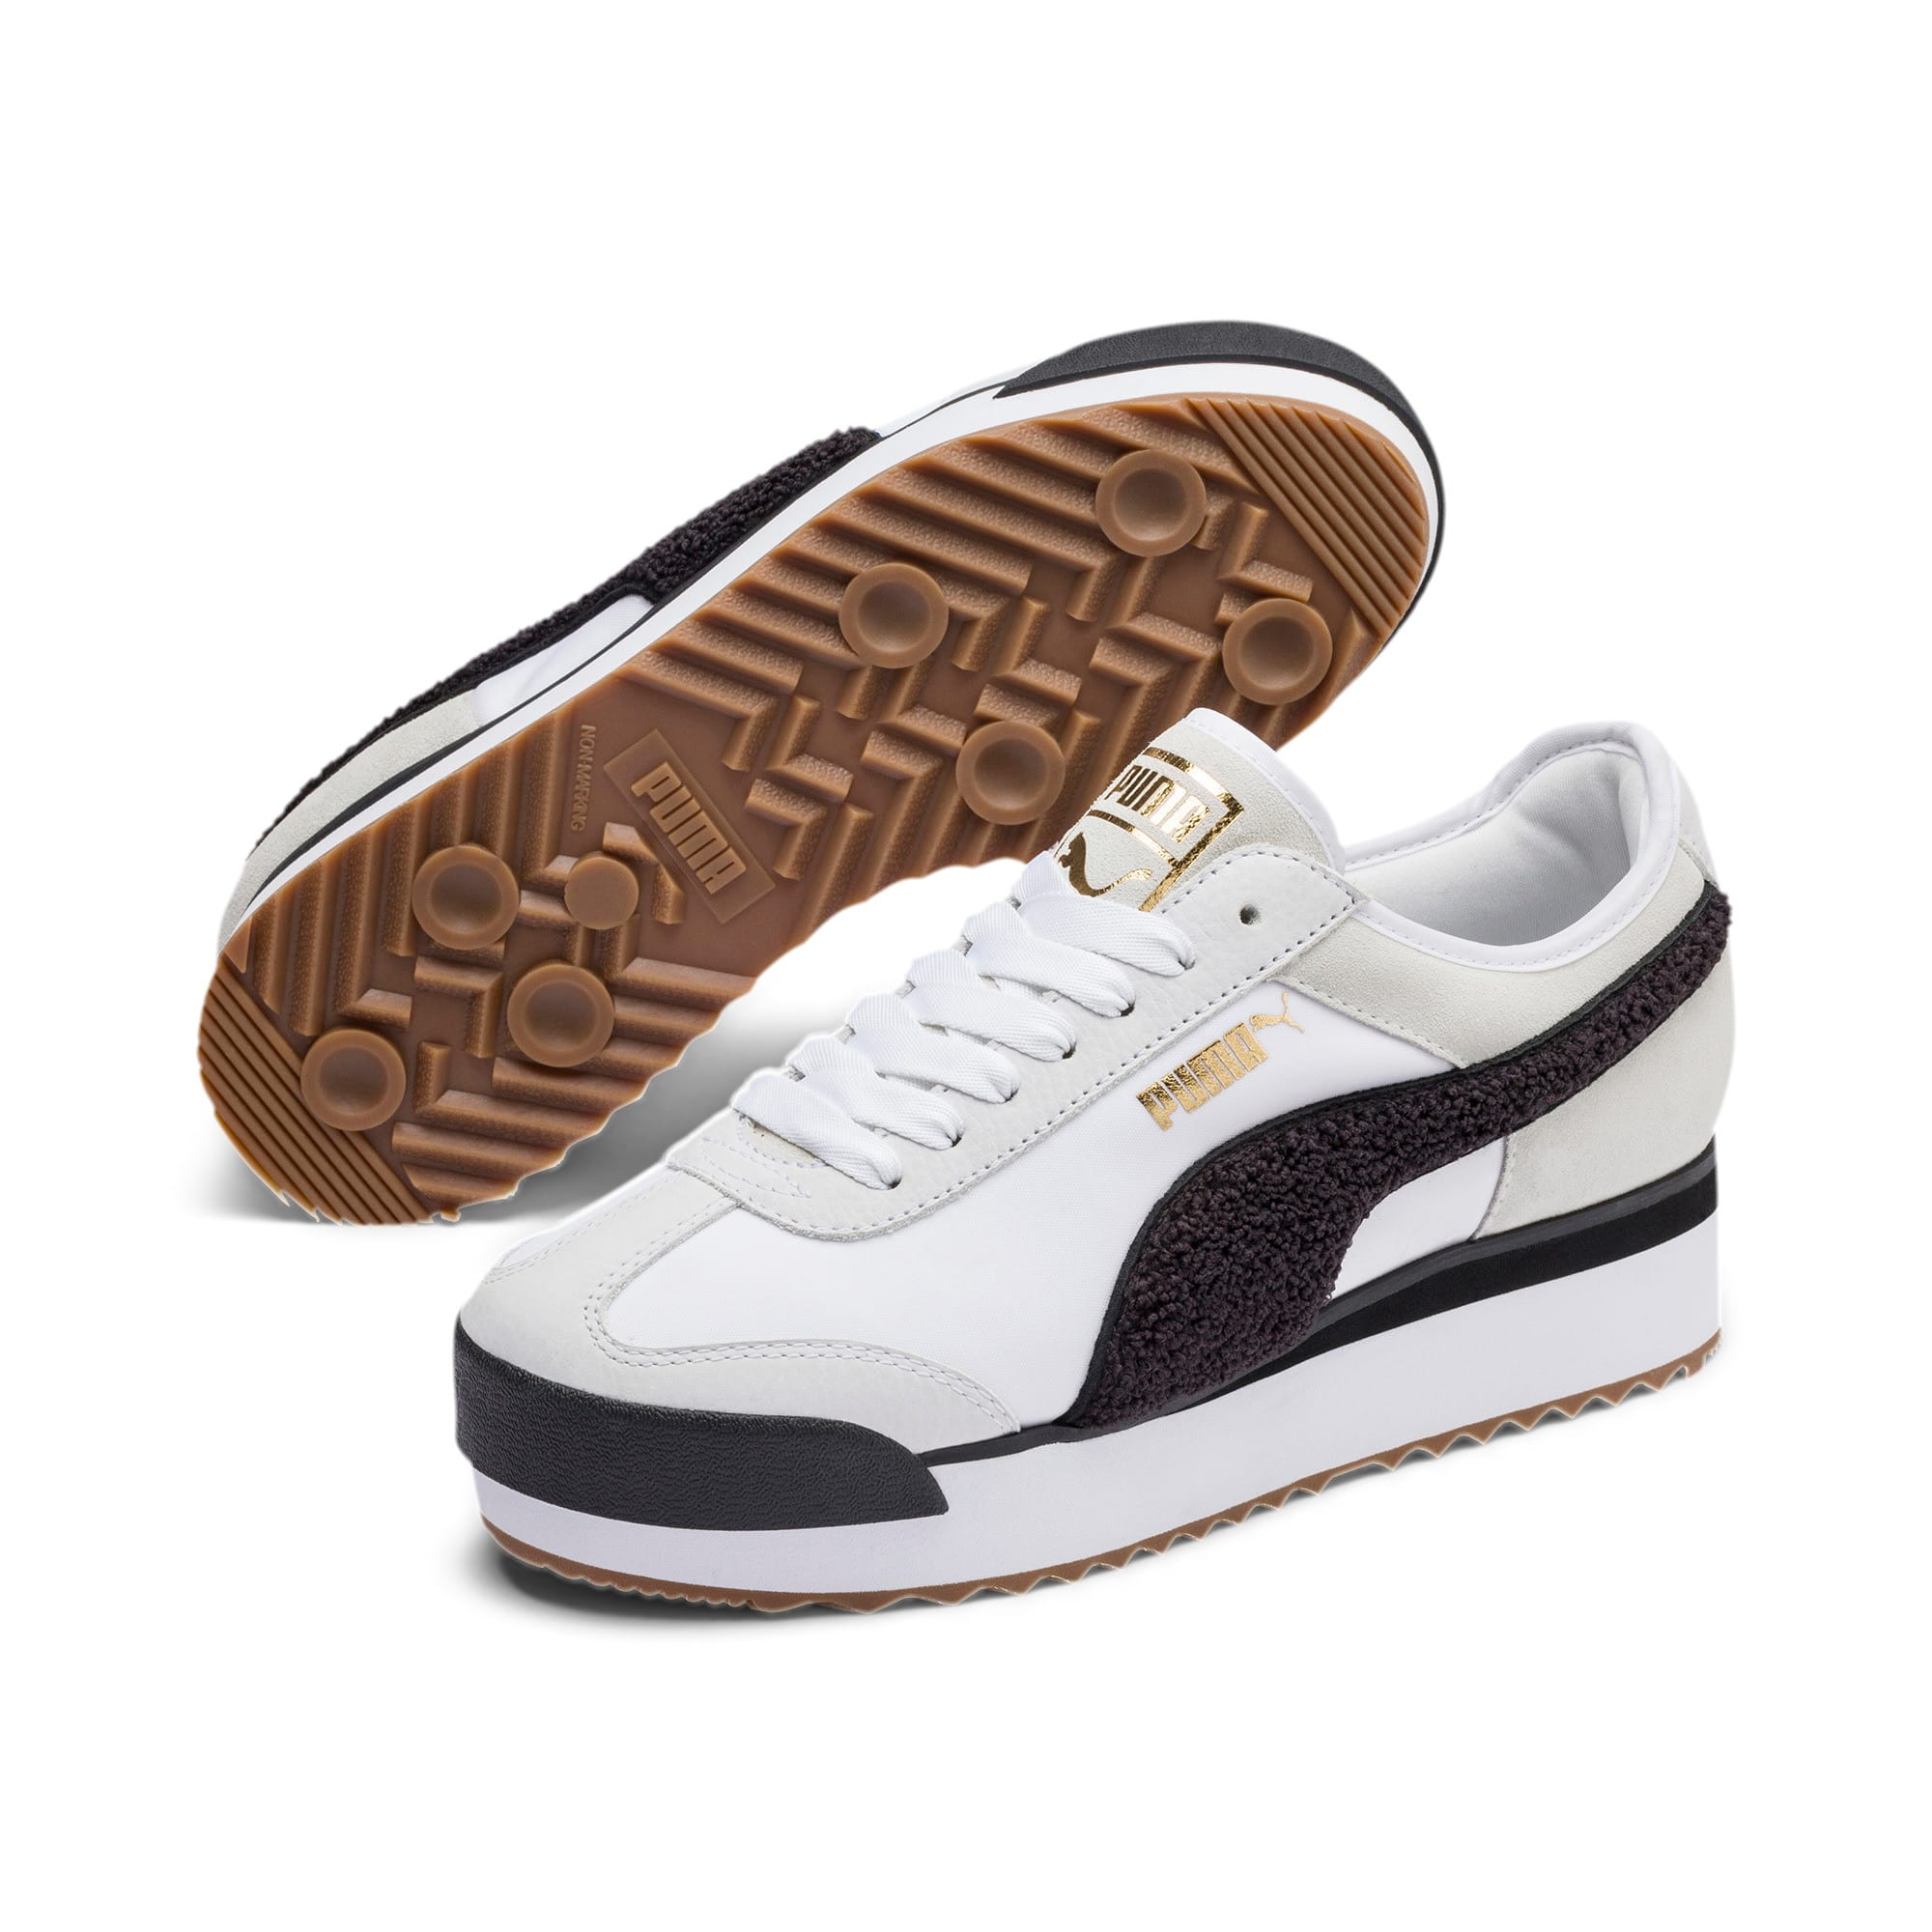 Thumbnail 3 of Roma Amor Heritage Women's Sneakers, Puma White-Puma Black, medium